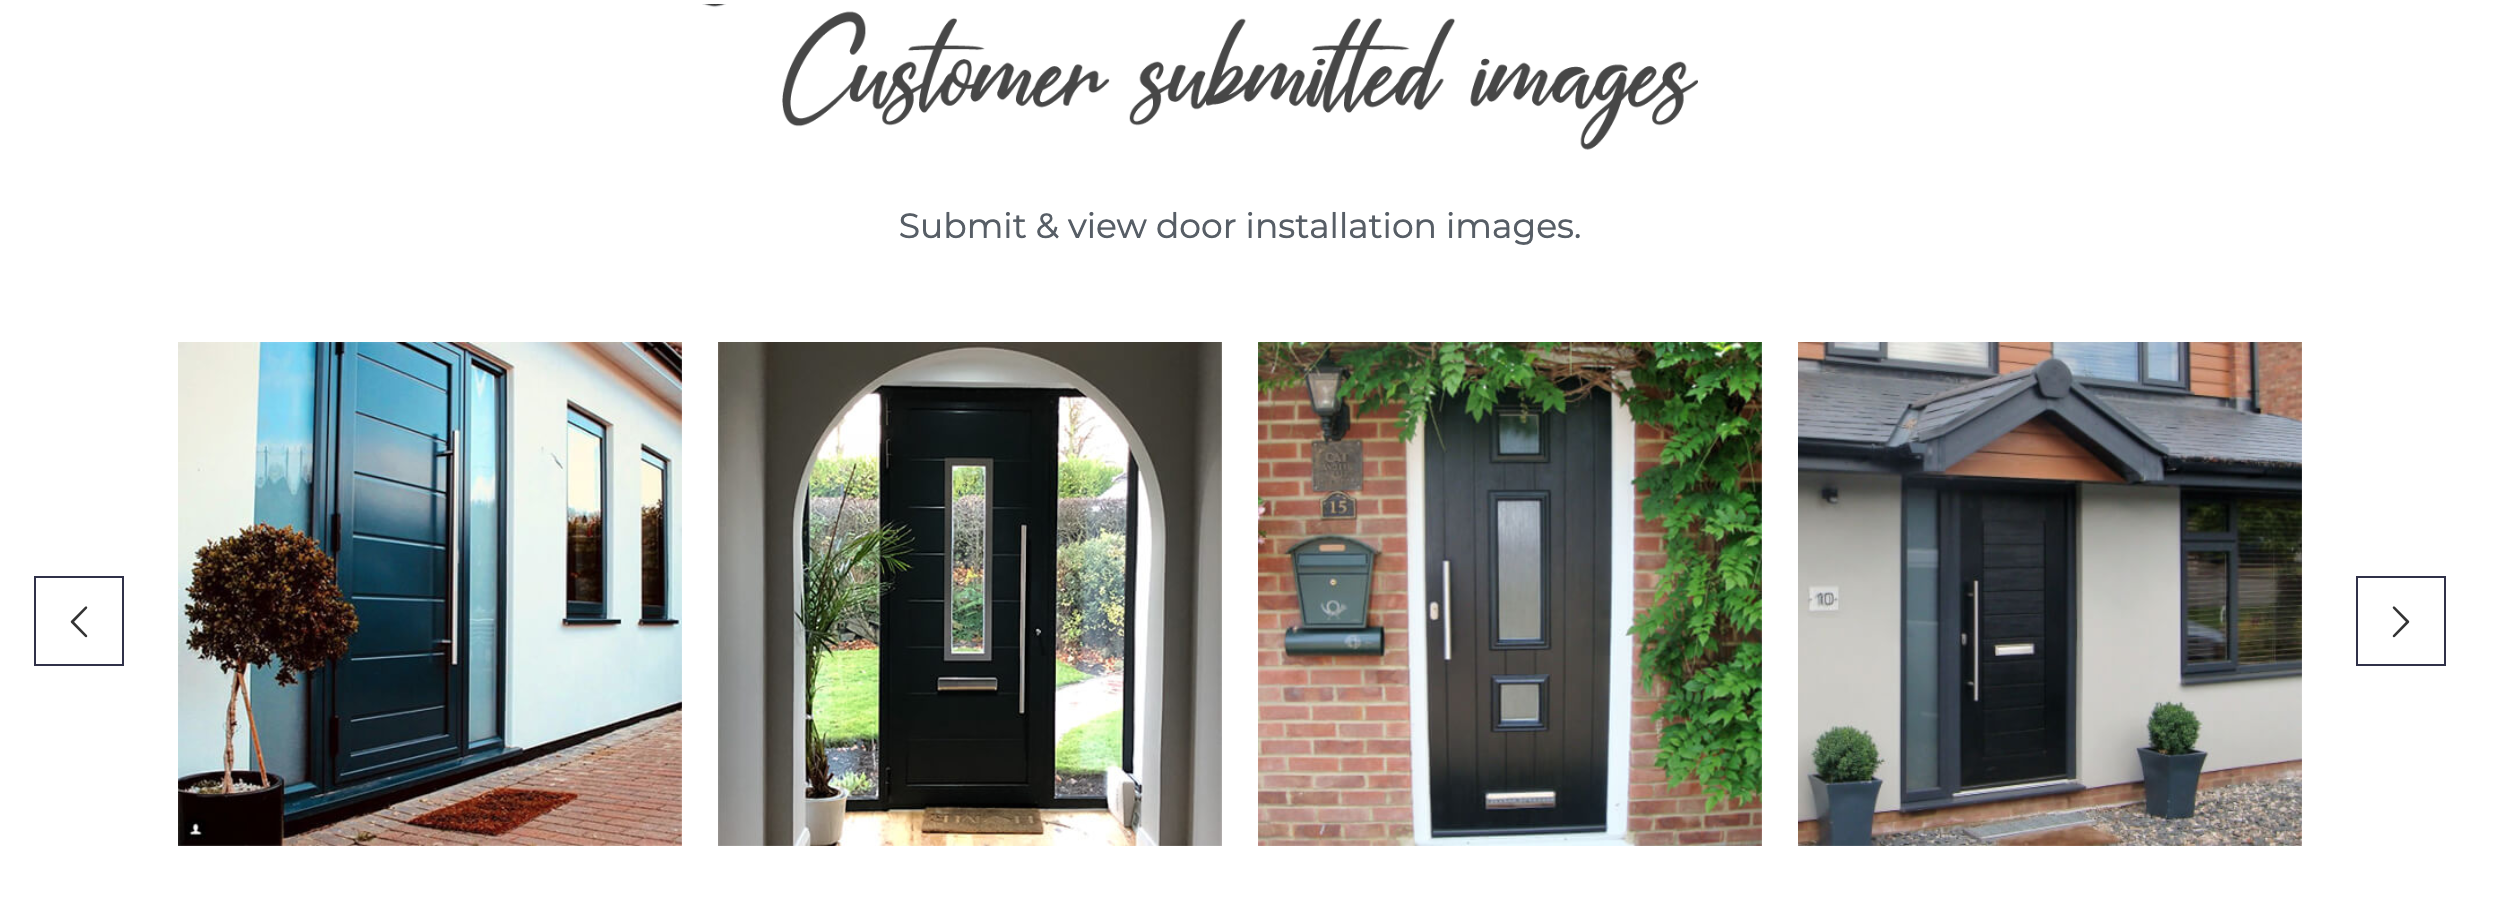 Customer doors